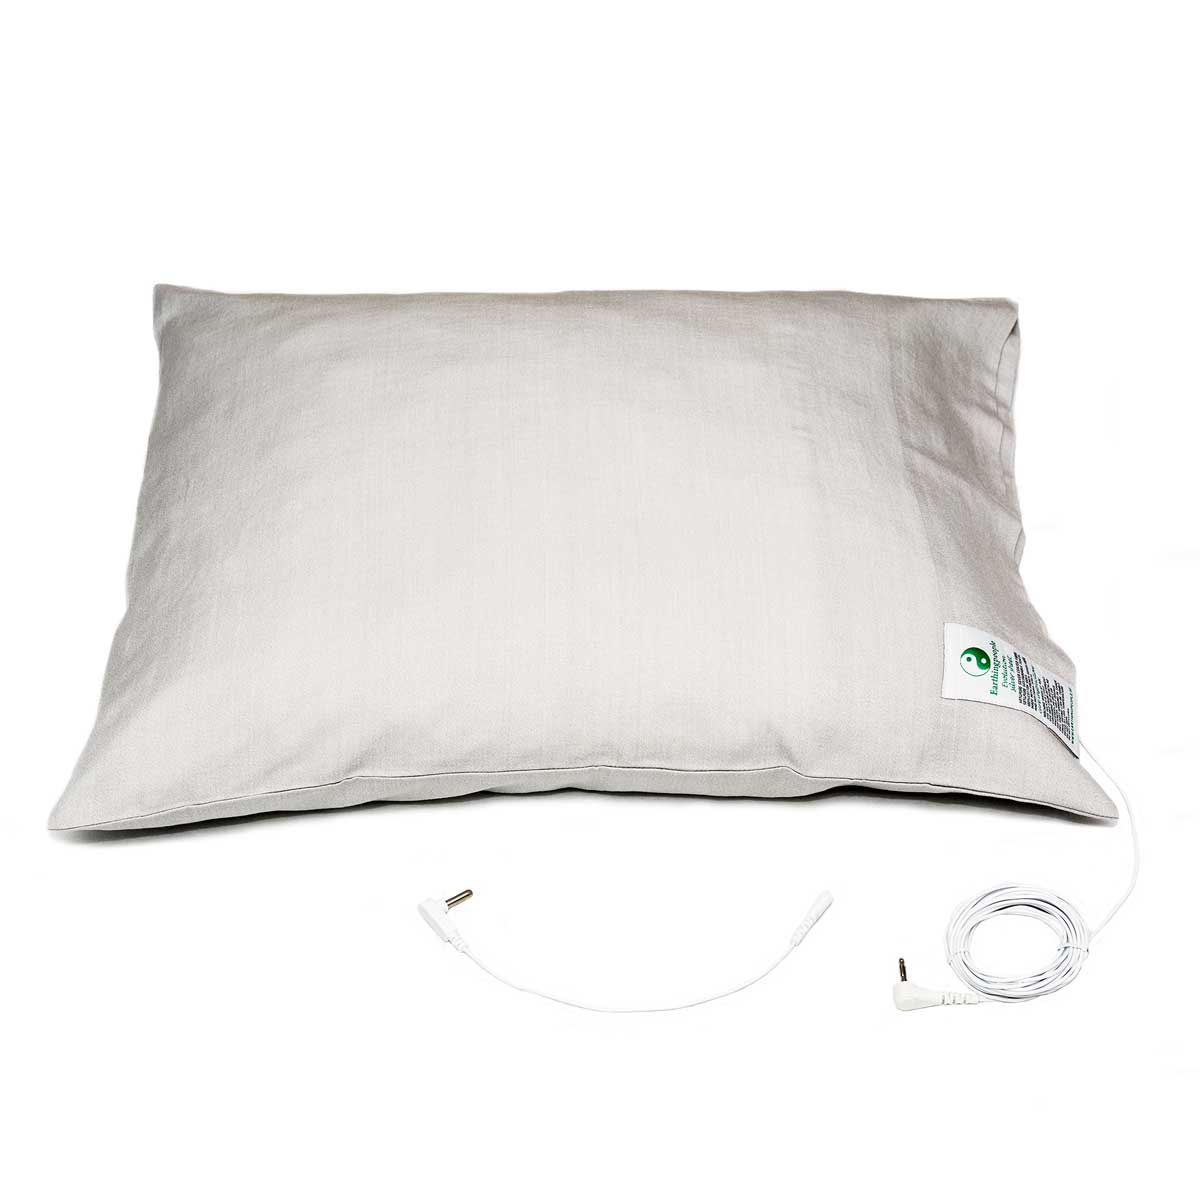 New Evolution pillow case